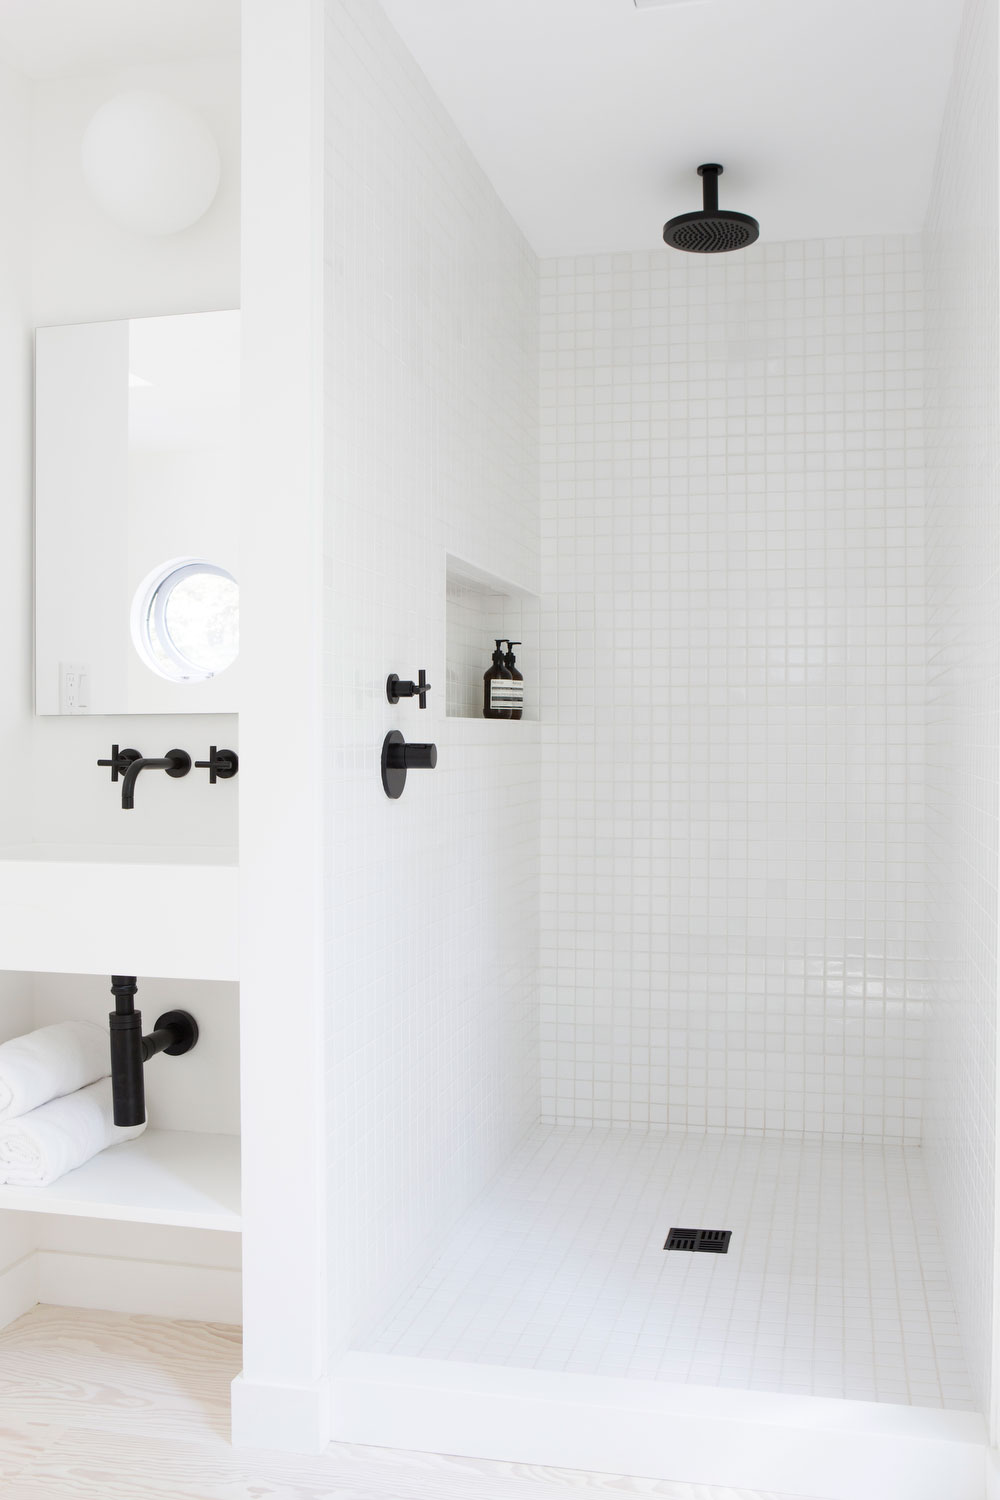 ... Your Bathroom Hardware. All You Need Is A Screwdriver! While Chrome  Might Be Classic, Both Brass And Black Options Are Very Of The Moment And  Will Help ...